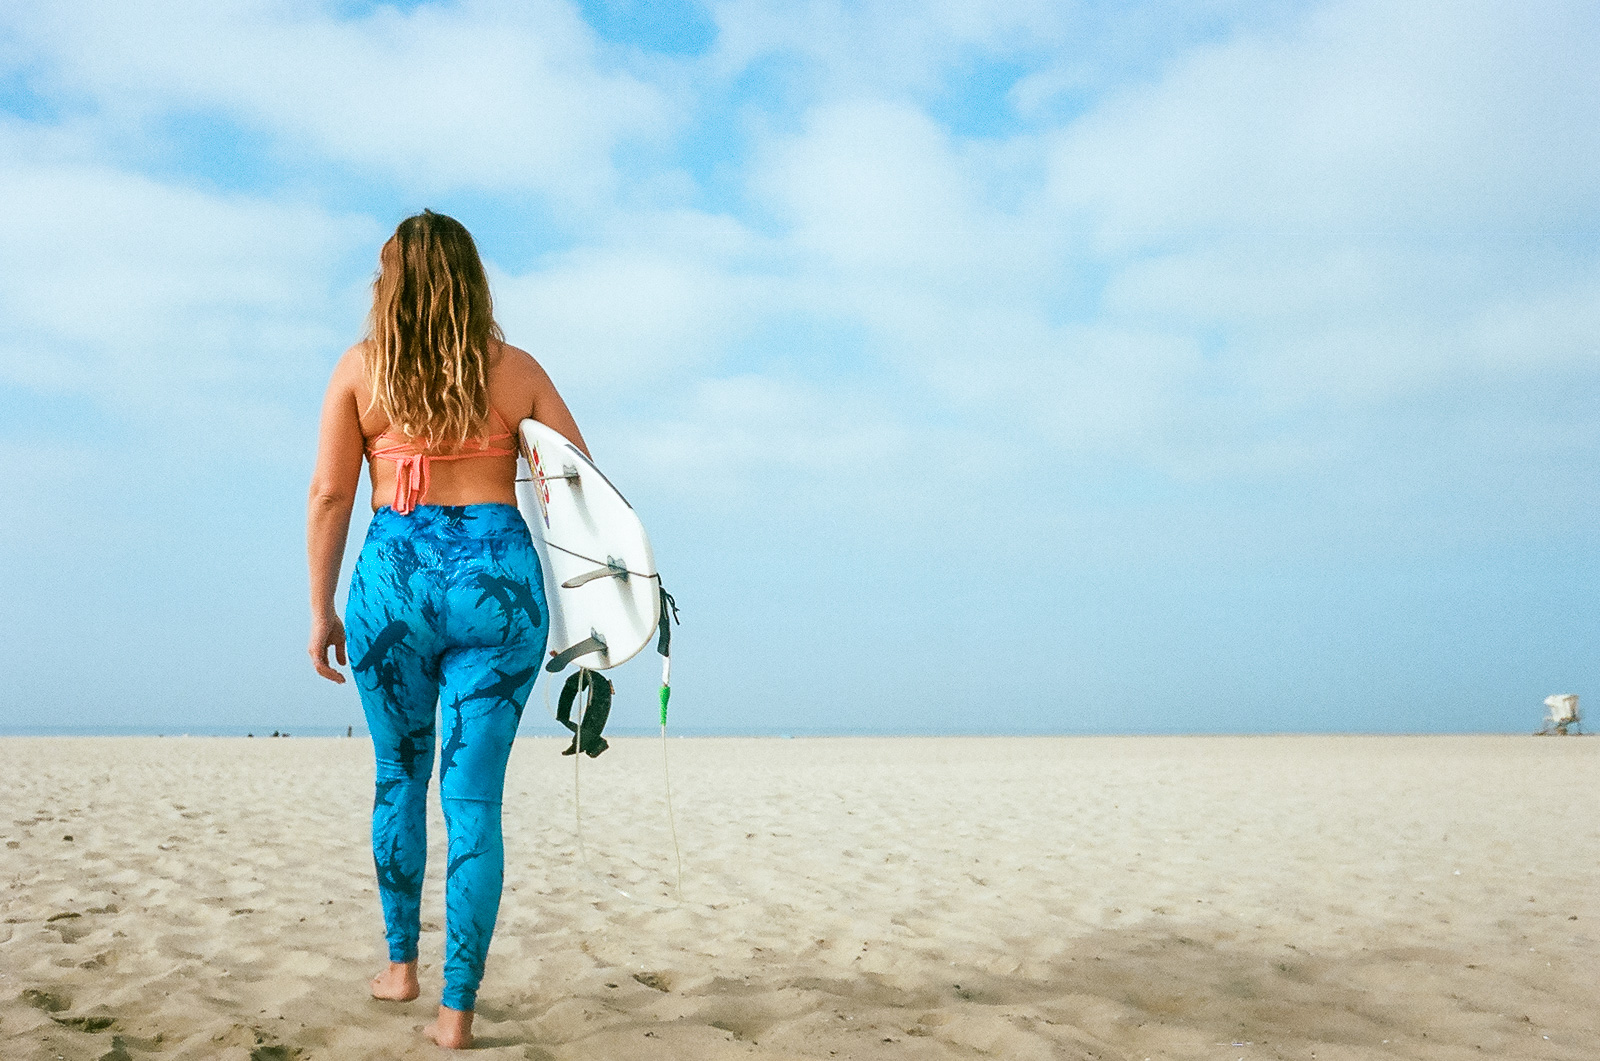 35mm color film Surfing photo shoot at Huntington State Beach with girl surfer for Get wise fool eco-friendly surf company